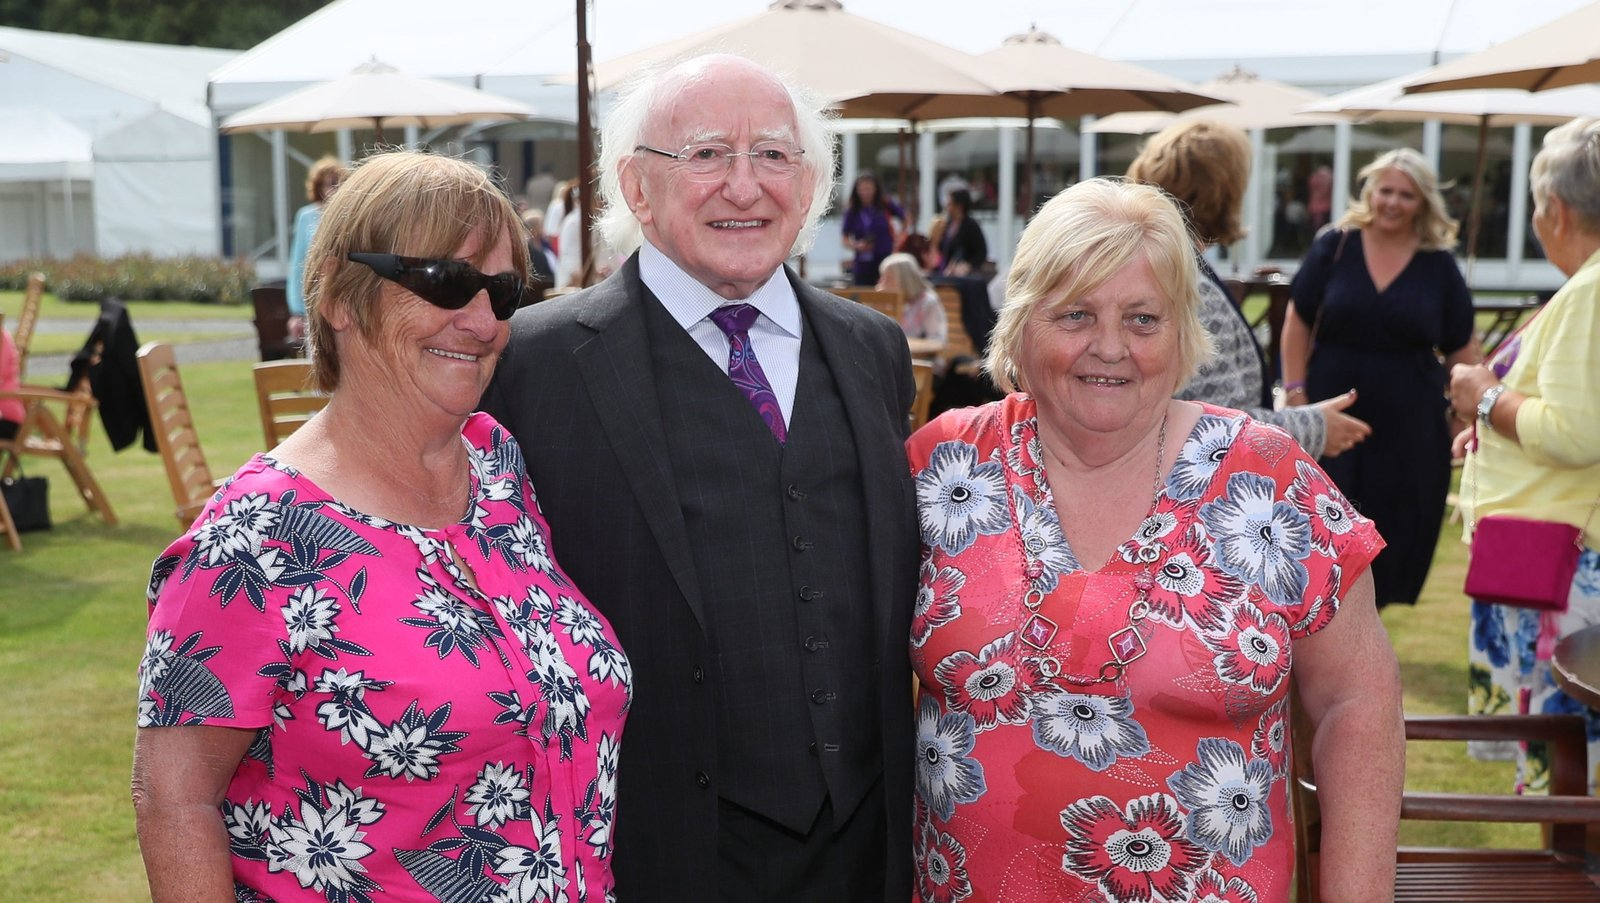 Image - Mairead Manly (L) and her friend Roseanna Murphy with President Higgins